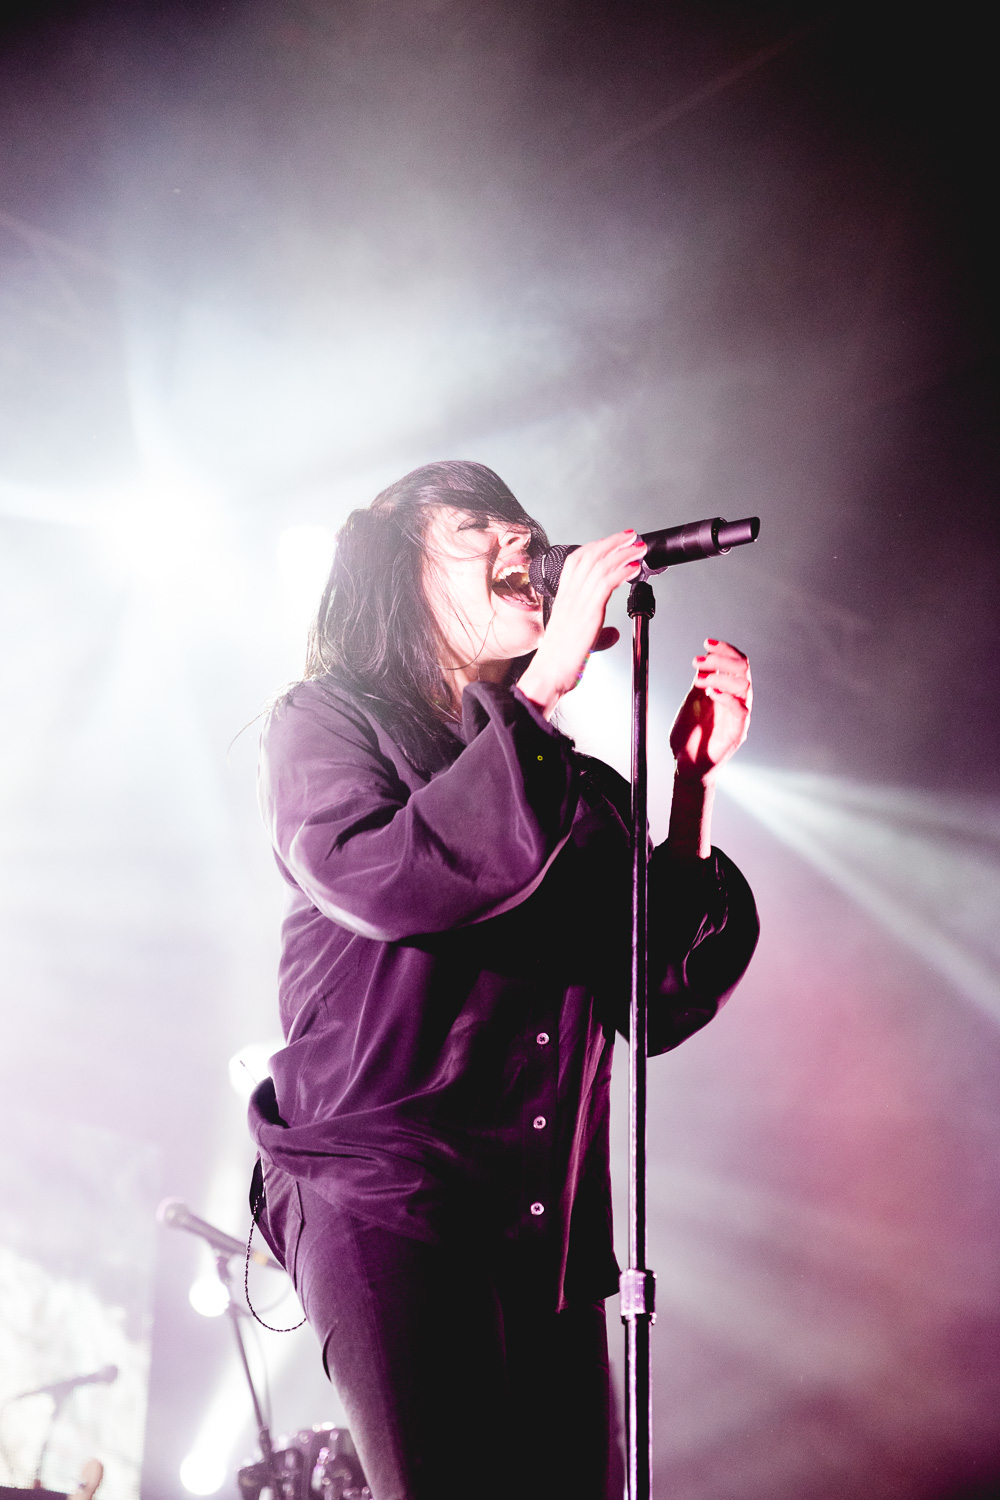 K.Flay singing her heart out.